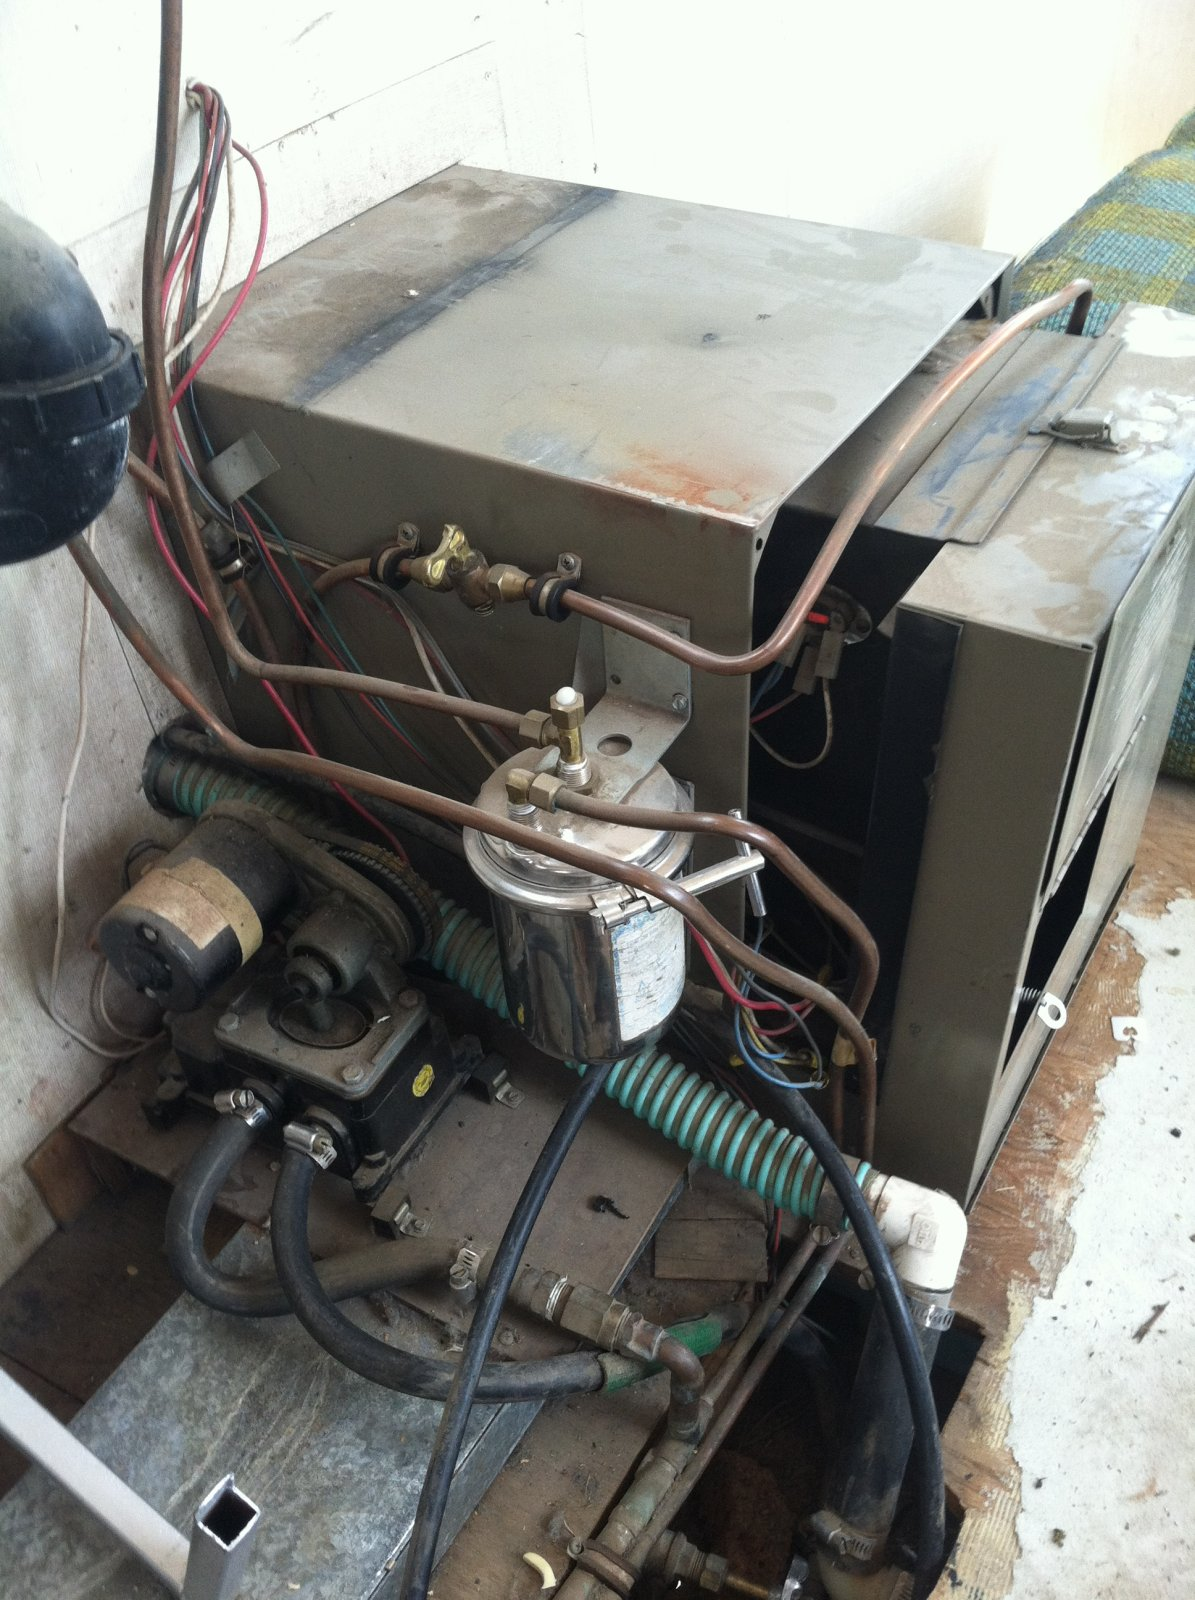 Click image for larger version  Name:furnace.jpg Views:83 Size:314.2 KB ID:213032